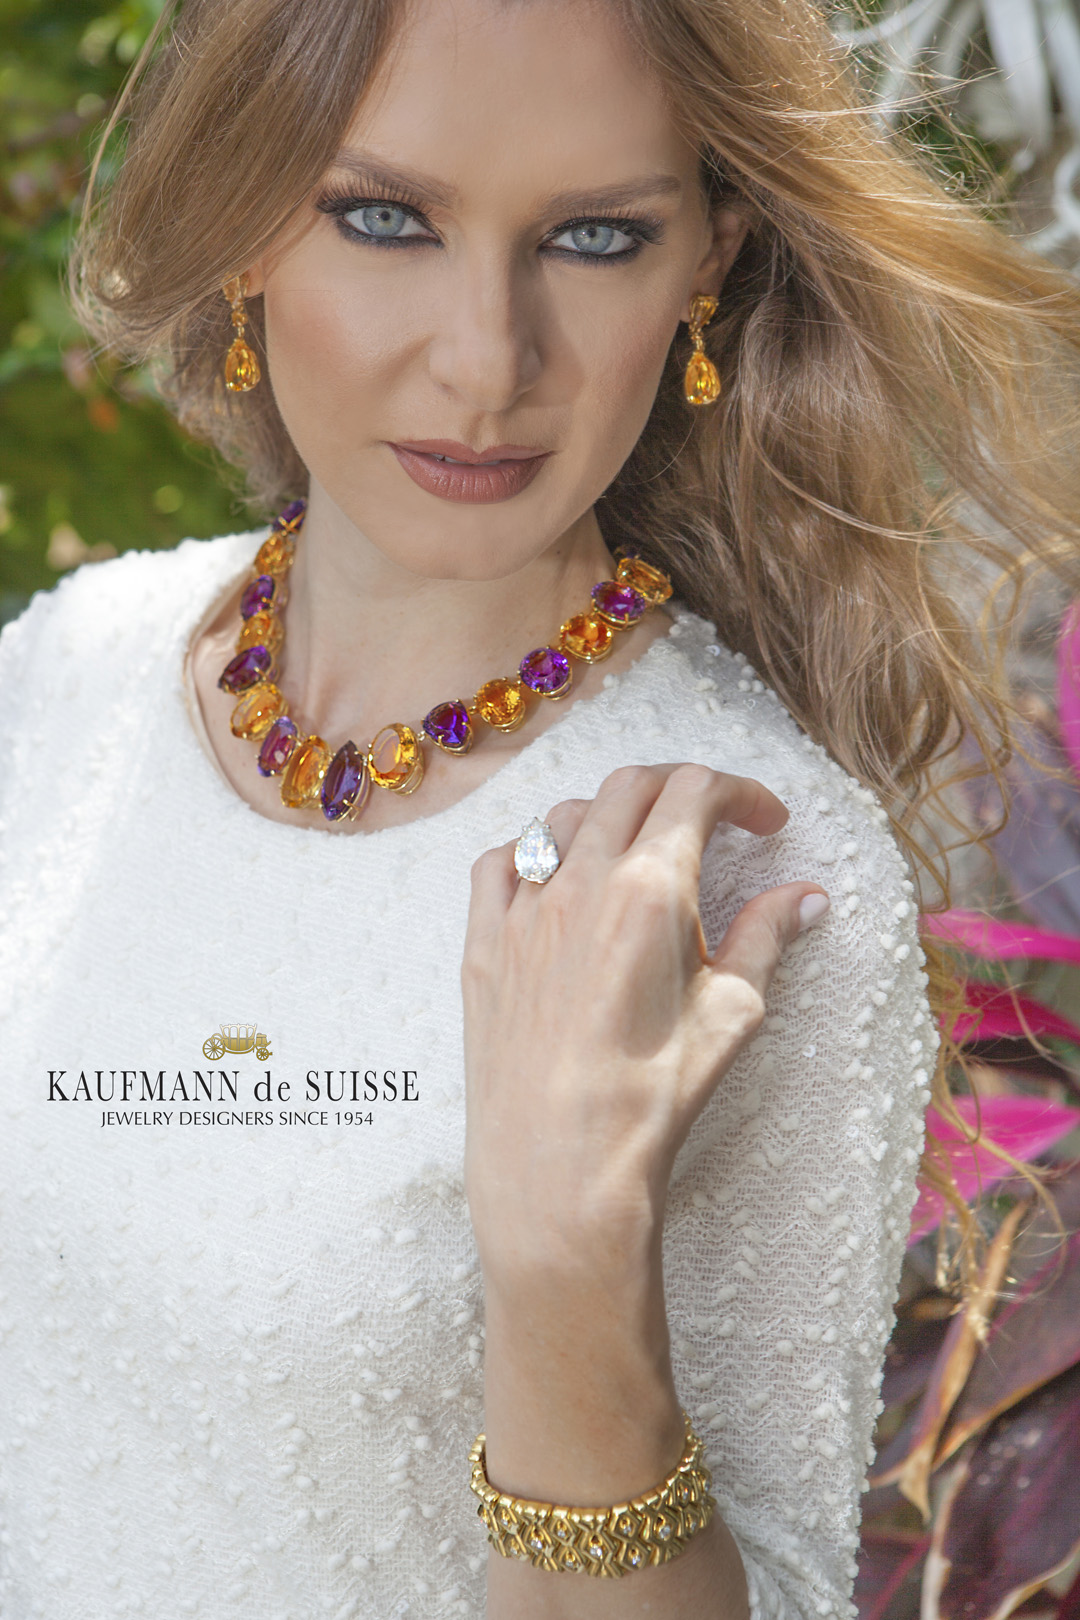 18K Yellow Gold Amethyst & Citrine Necklace and Earrings with Pear Shaped Diamond Ring